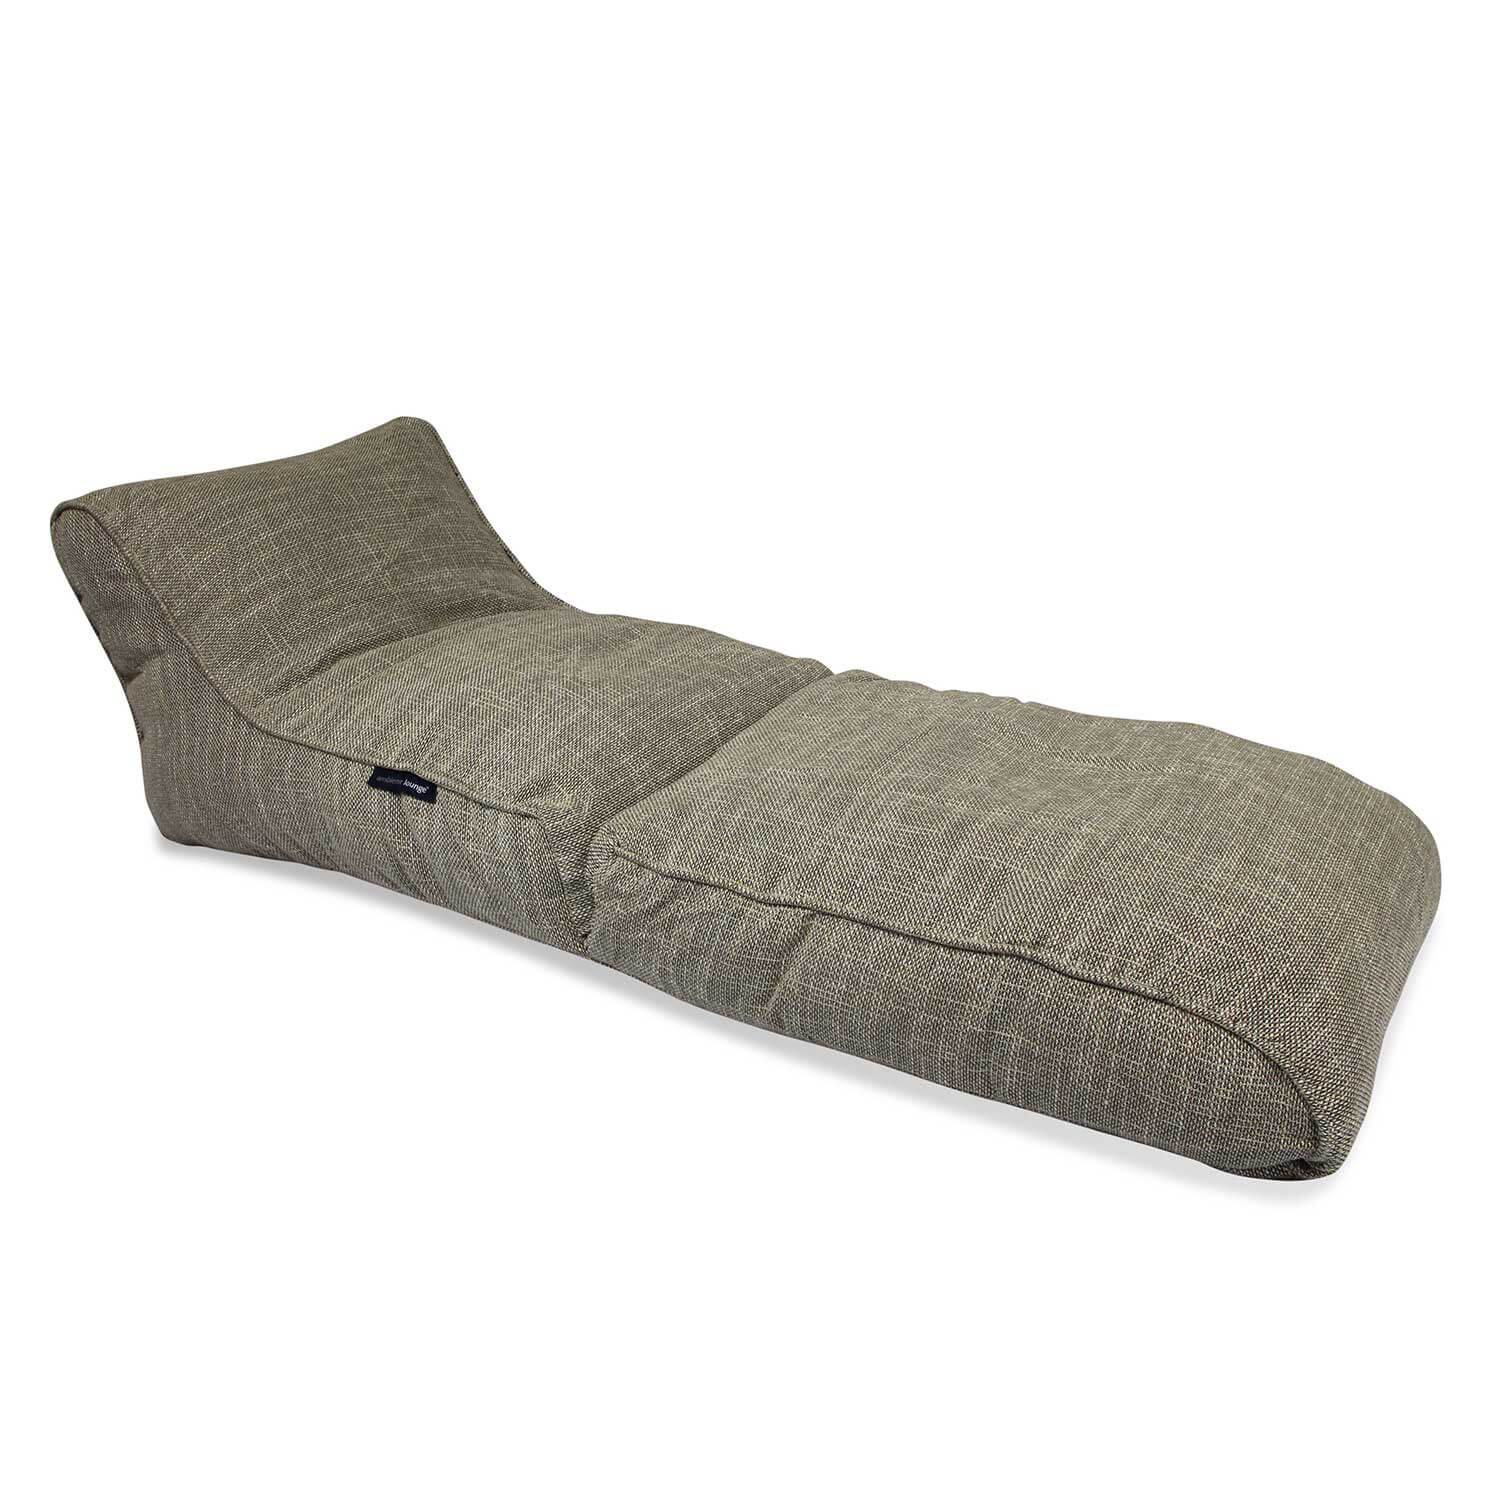 Full Body Outdoor Bean Bags